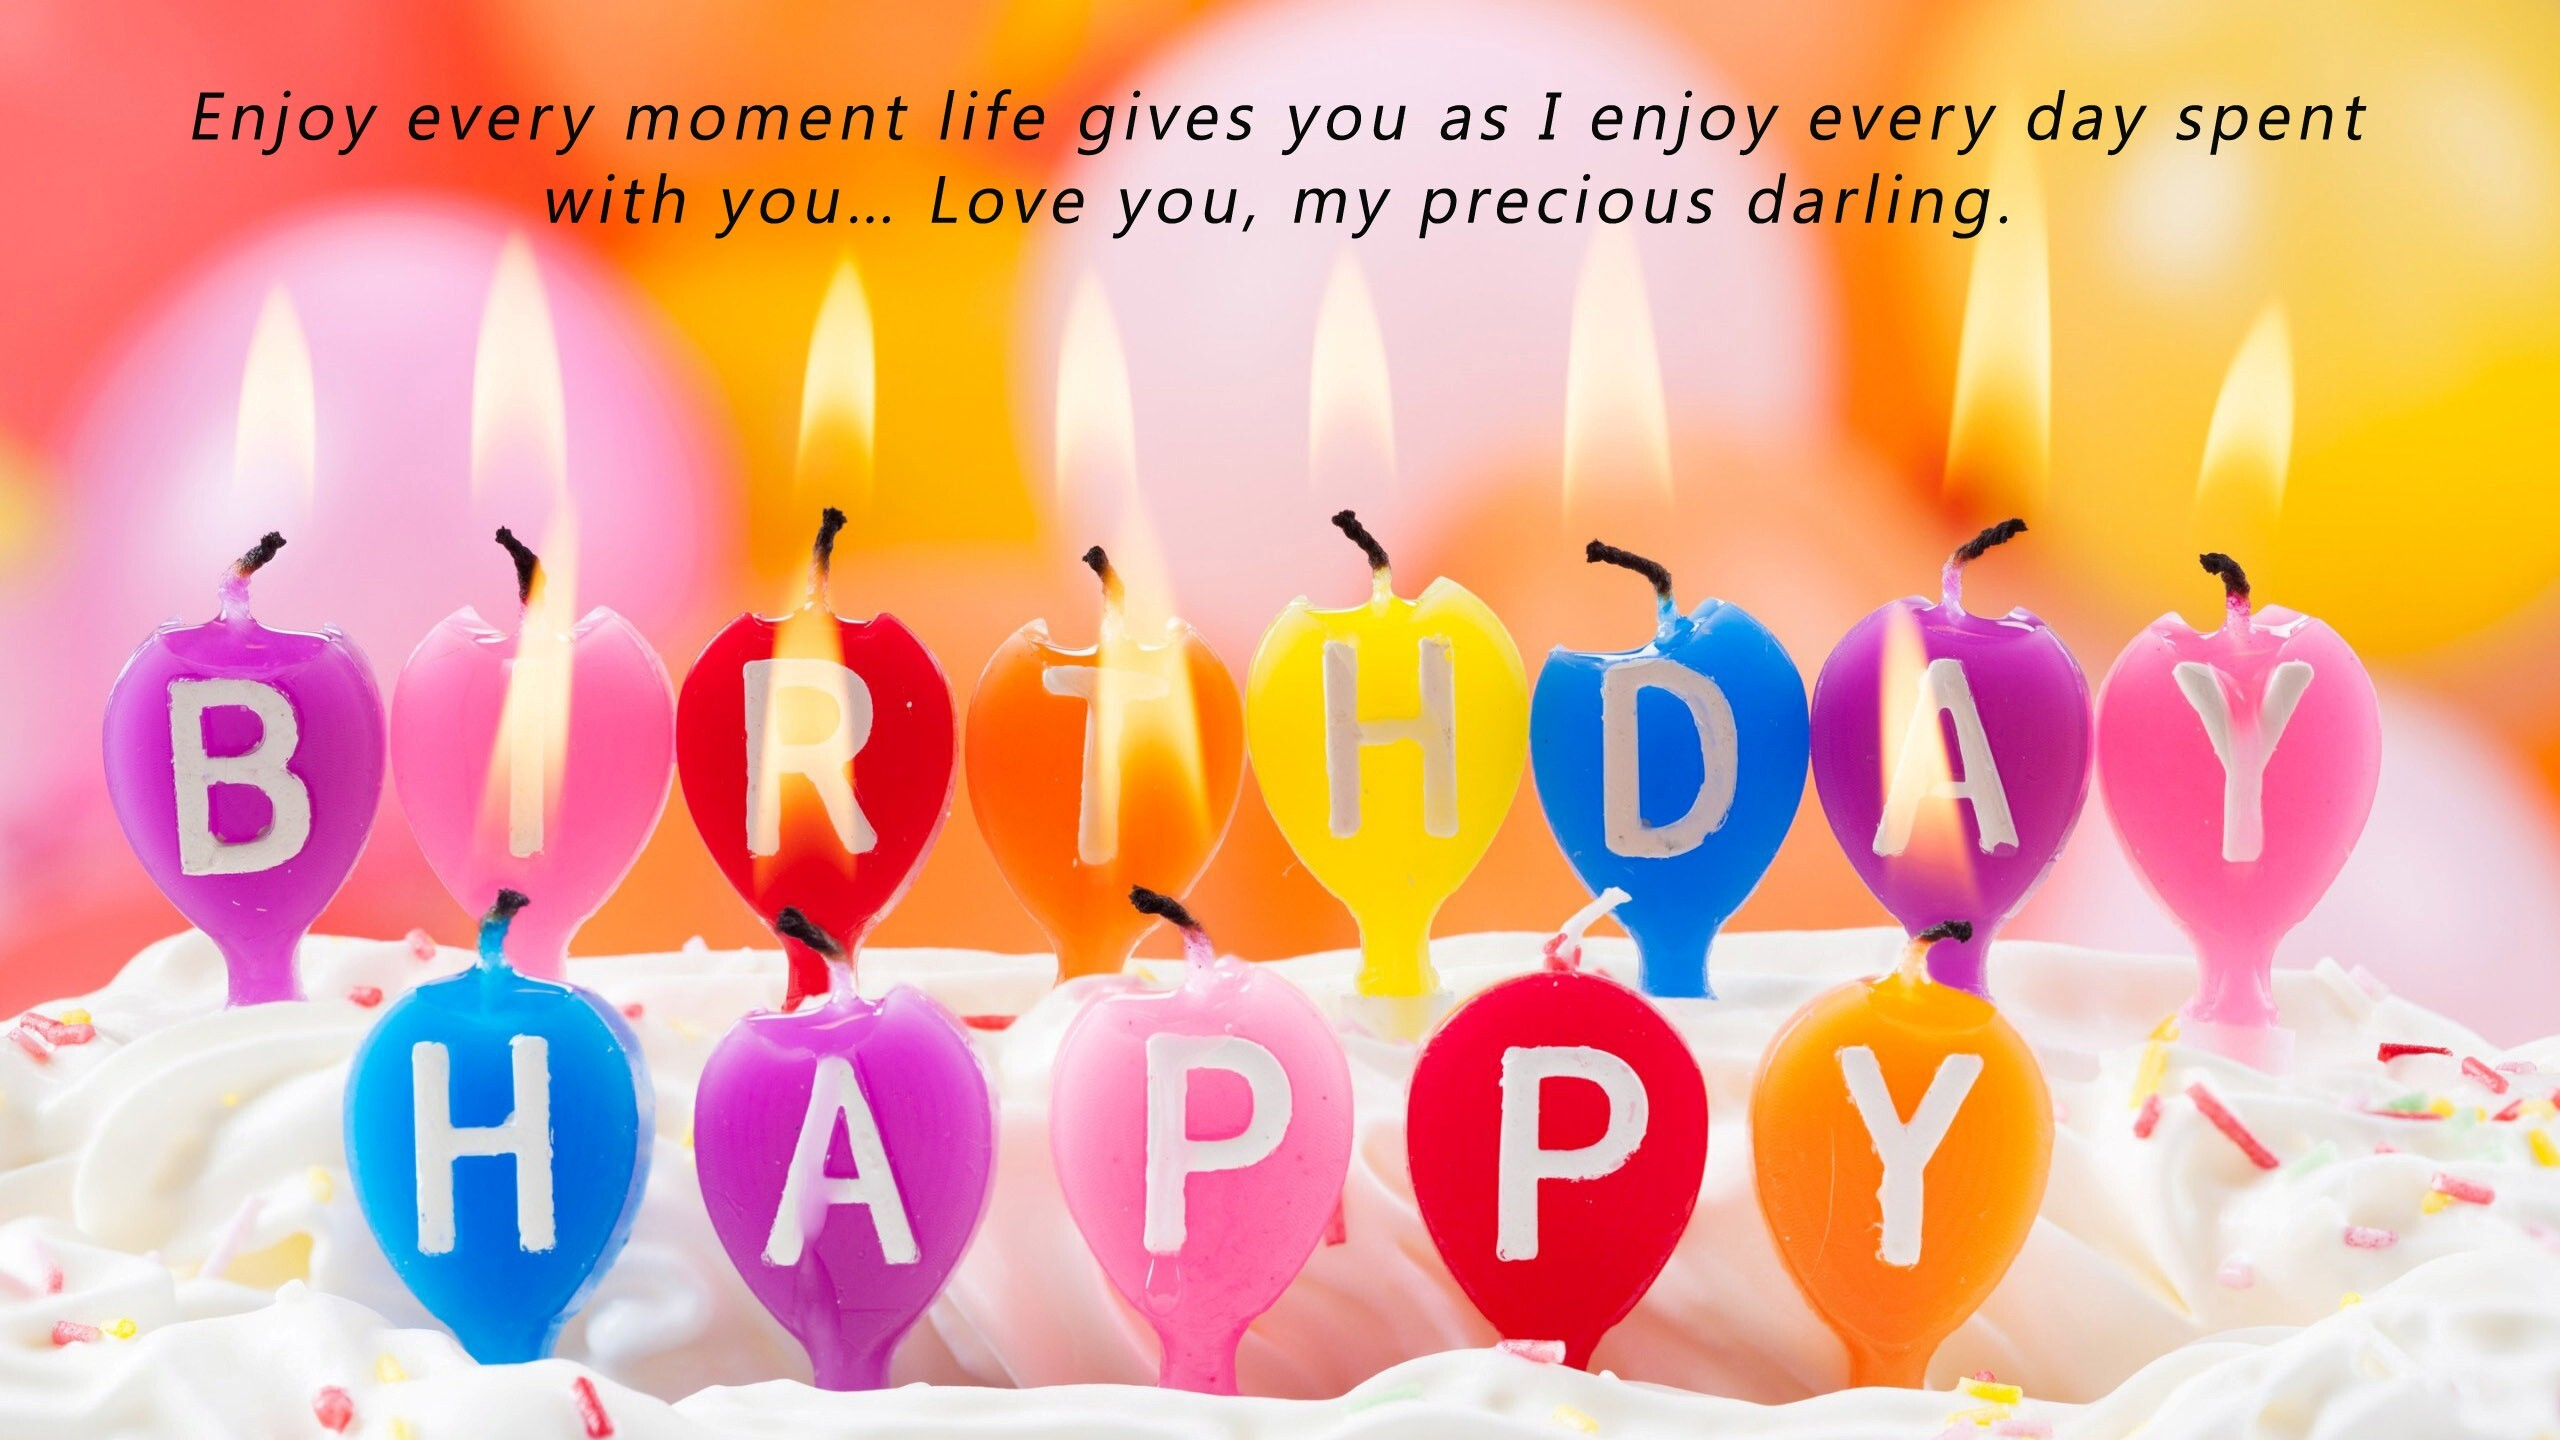 My Love Birthday Wallpaper : Wish You Happy Birthday My Love Darling Wife HD Wallpapers